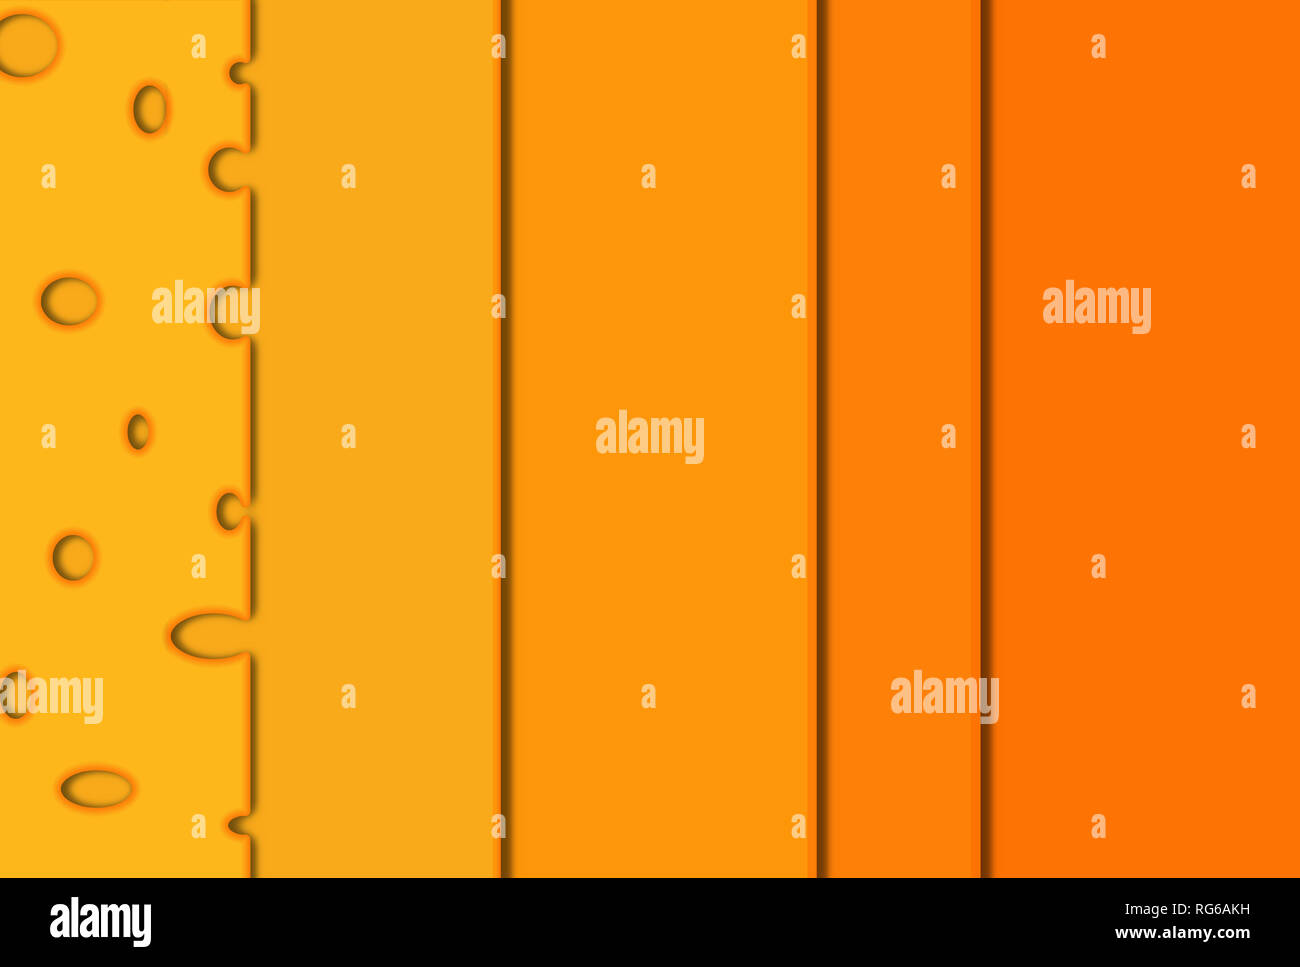 Cheese slices and differente cheese colors, illustration - Stock Image